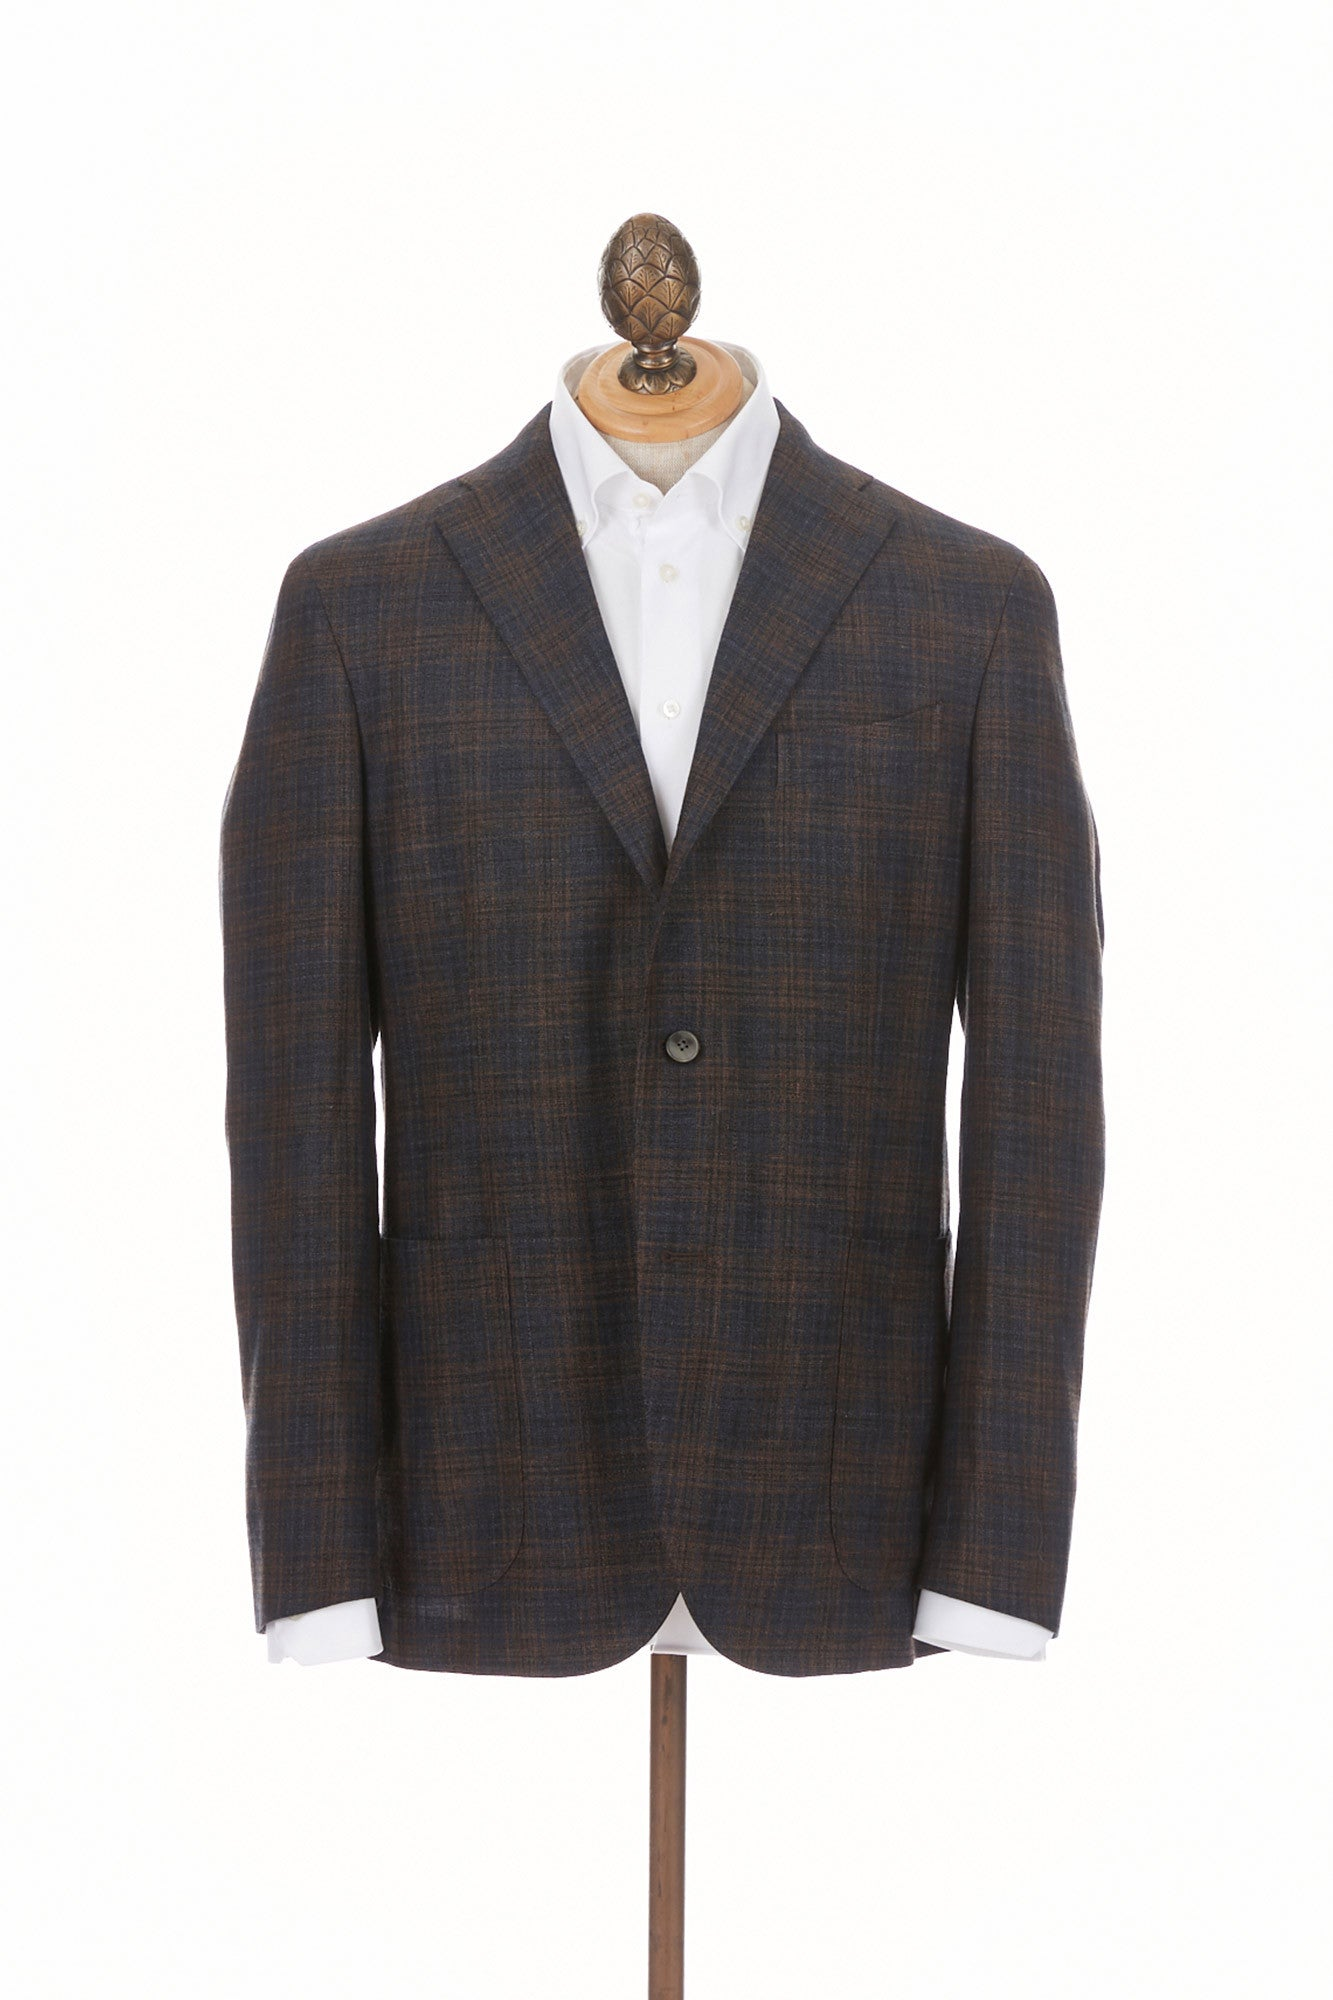 Boglioli 'K-Jacket' Brown & Navy Check Sport Jacket